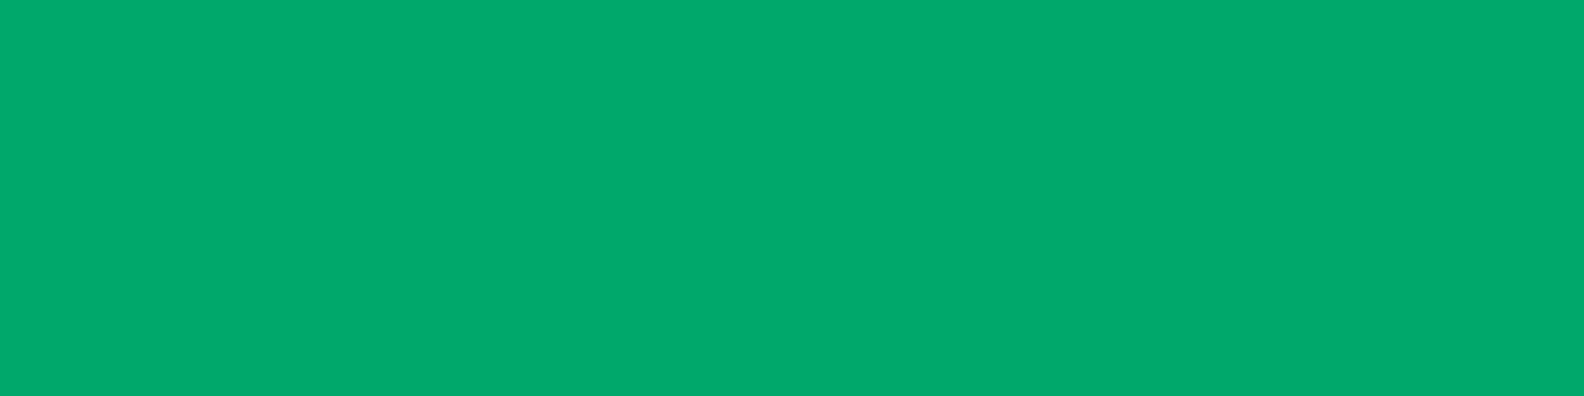 1584x396 Jade Solid Color Background